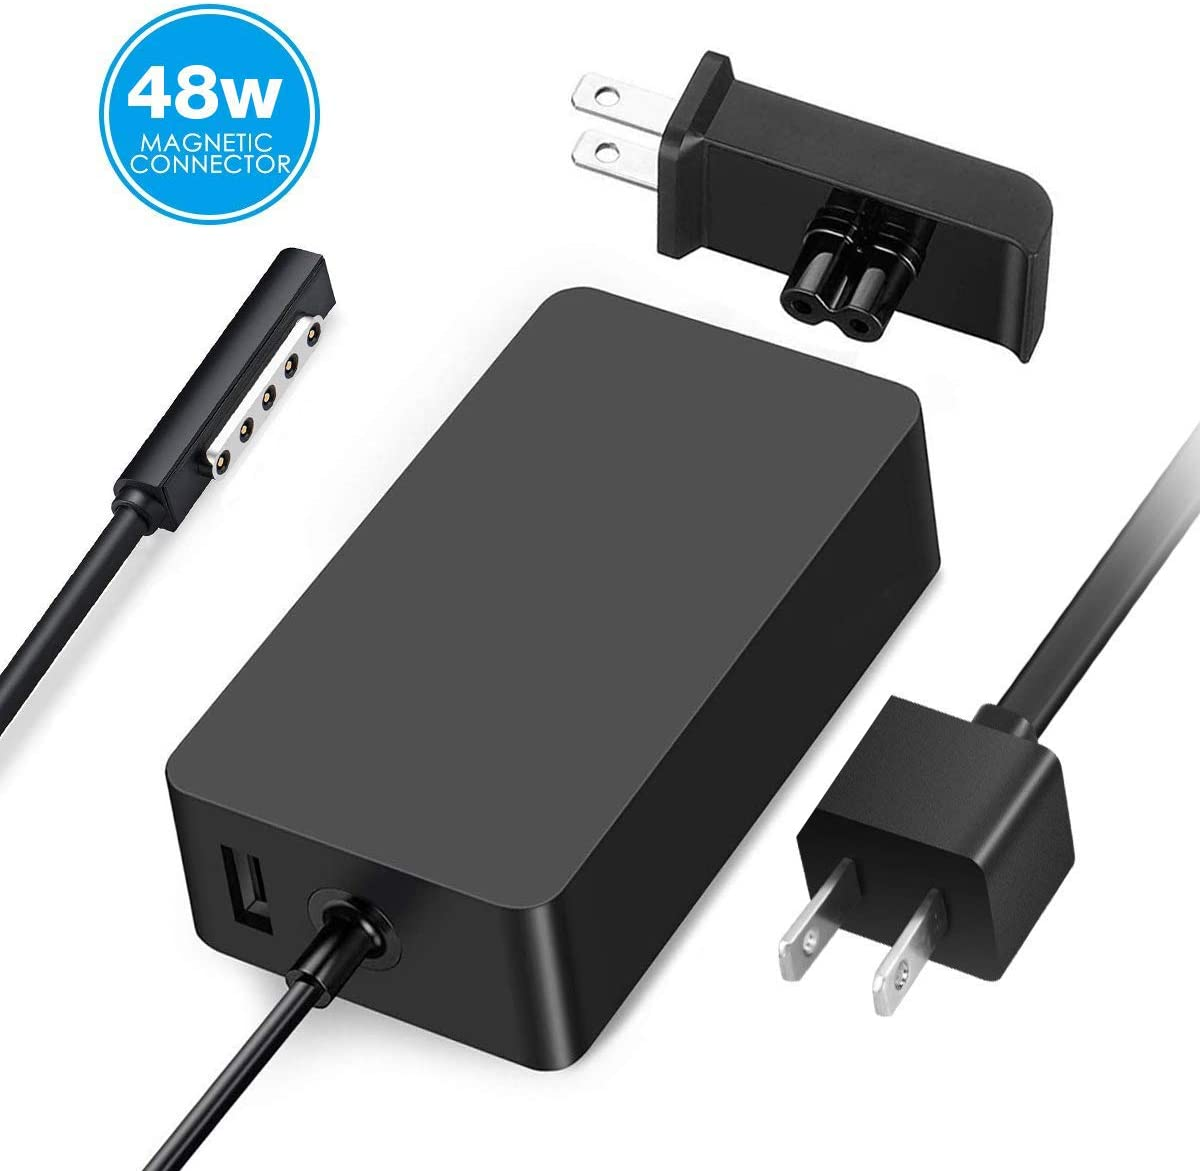 Surface Pro 2 Charger Surface Pro 1 Charger,48W 12V 3.6A Surface Power Supply Adapter for Microsoft Surface Pro 2 Surface Pro 1 Surface RT with 6Ft ...